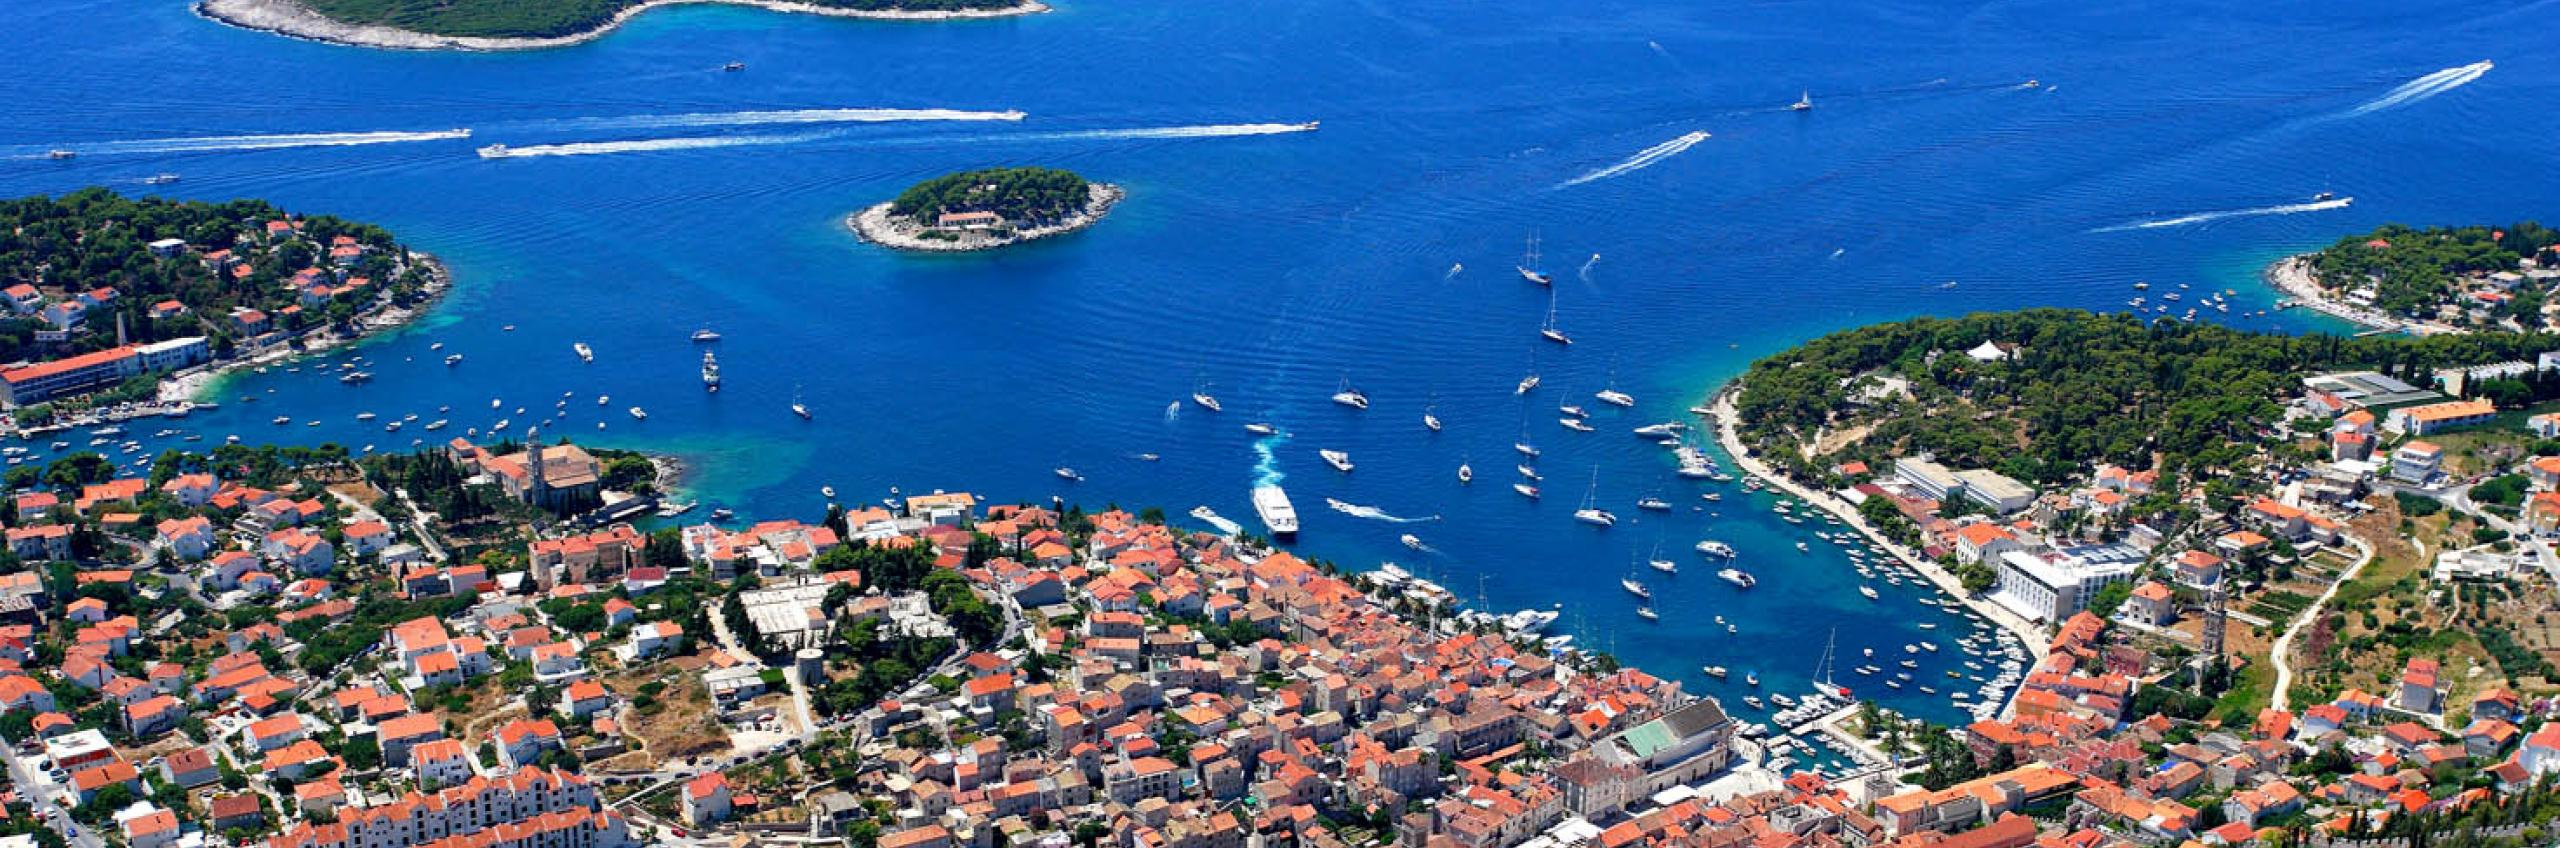 Guide to Hvar